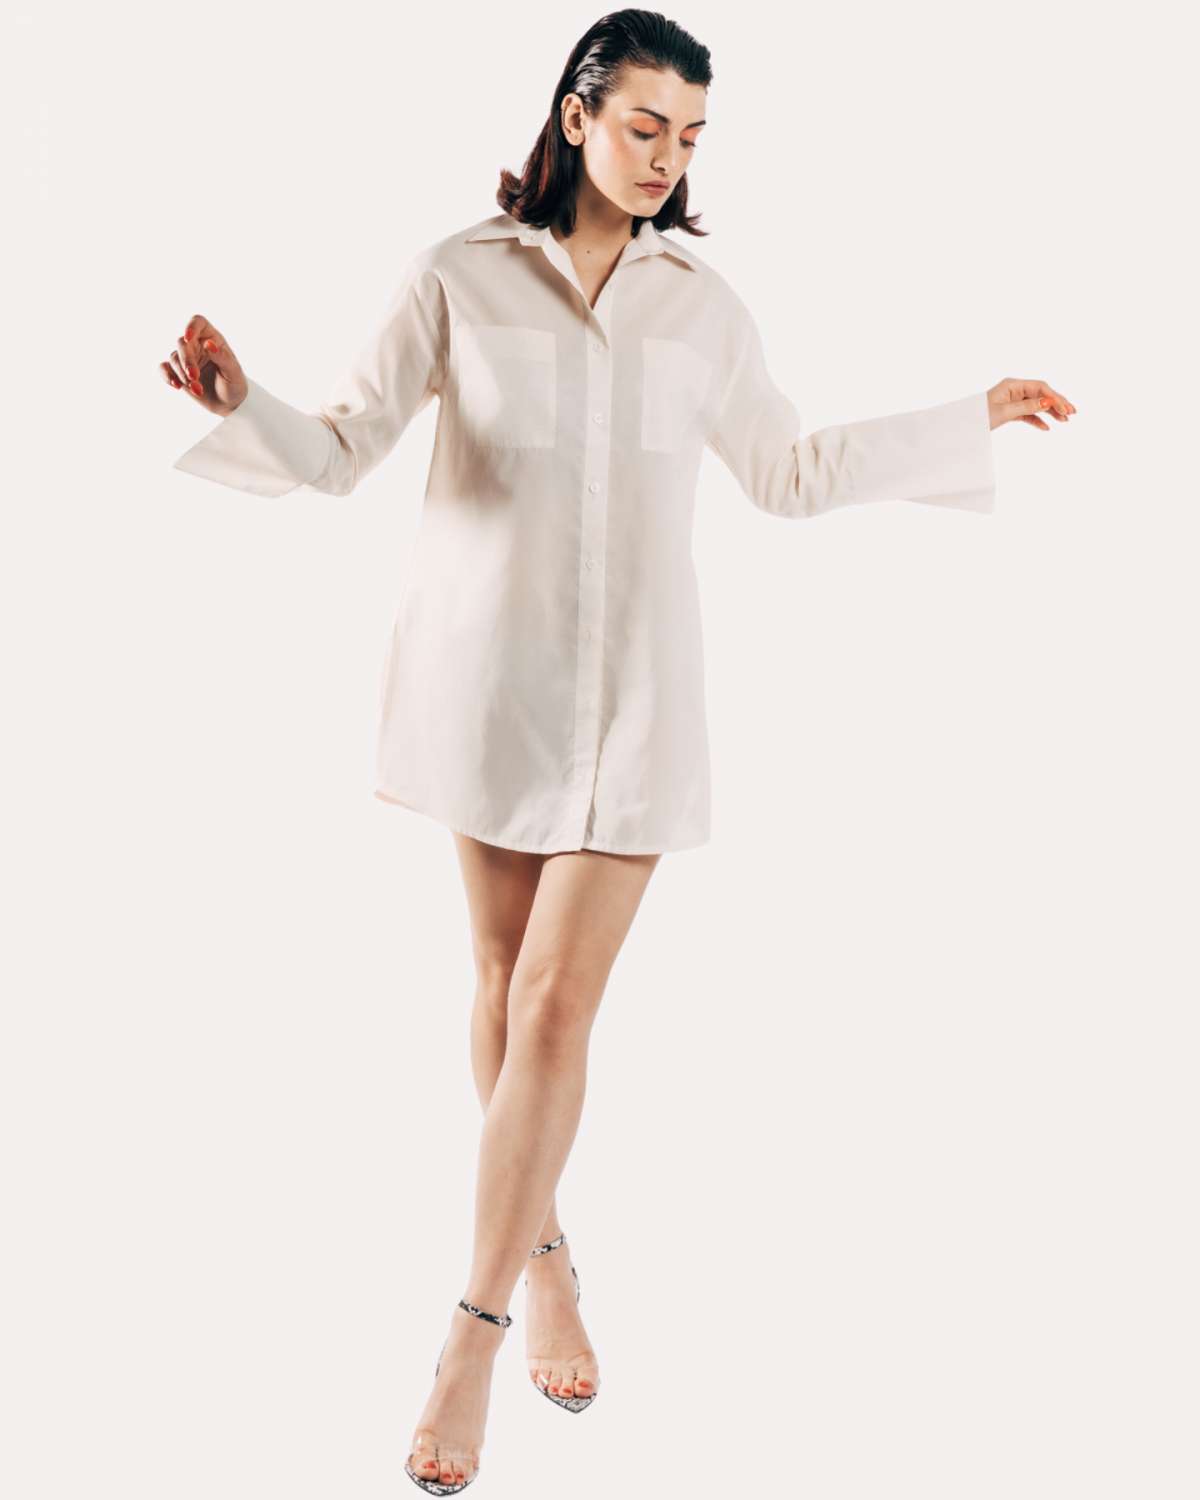 Robe chemise femme off white marque zwitter made in france